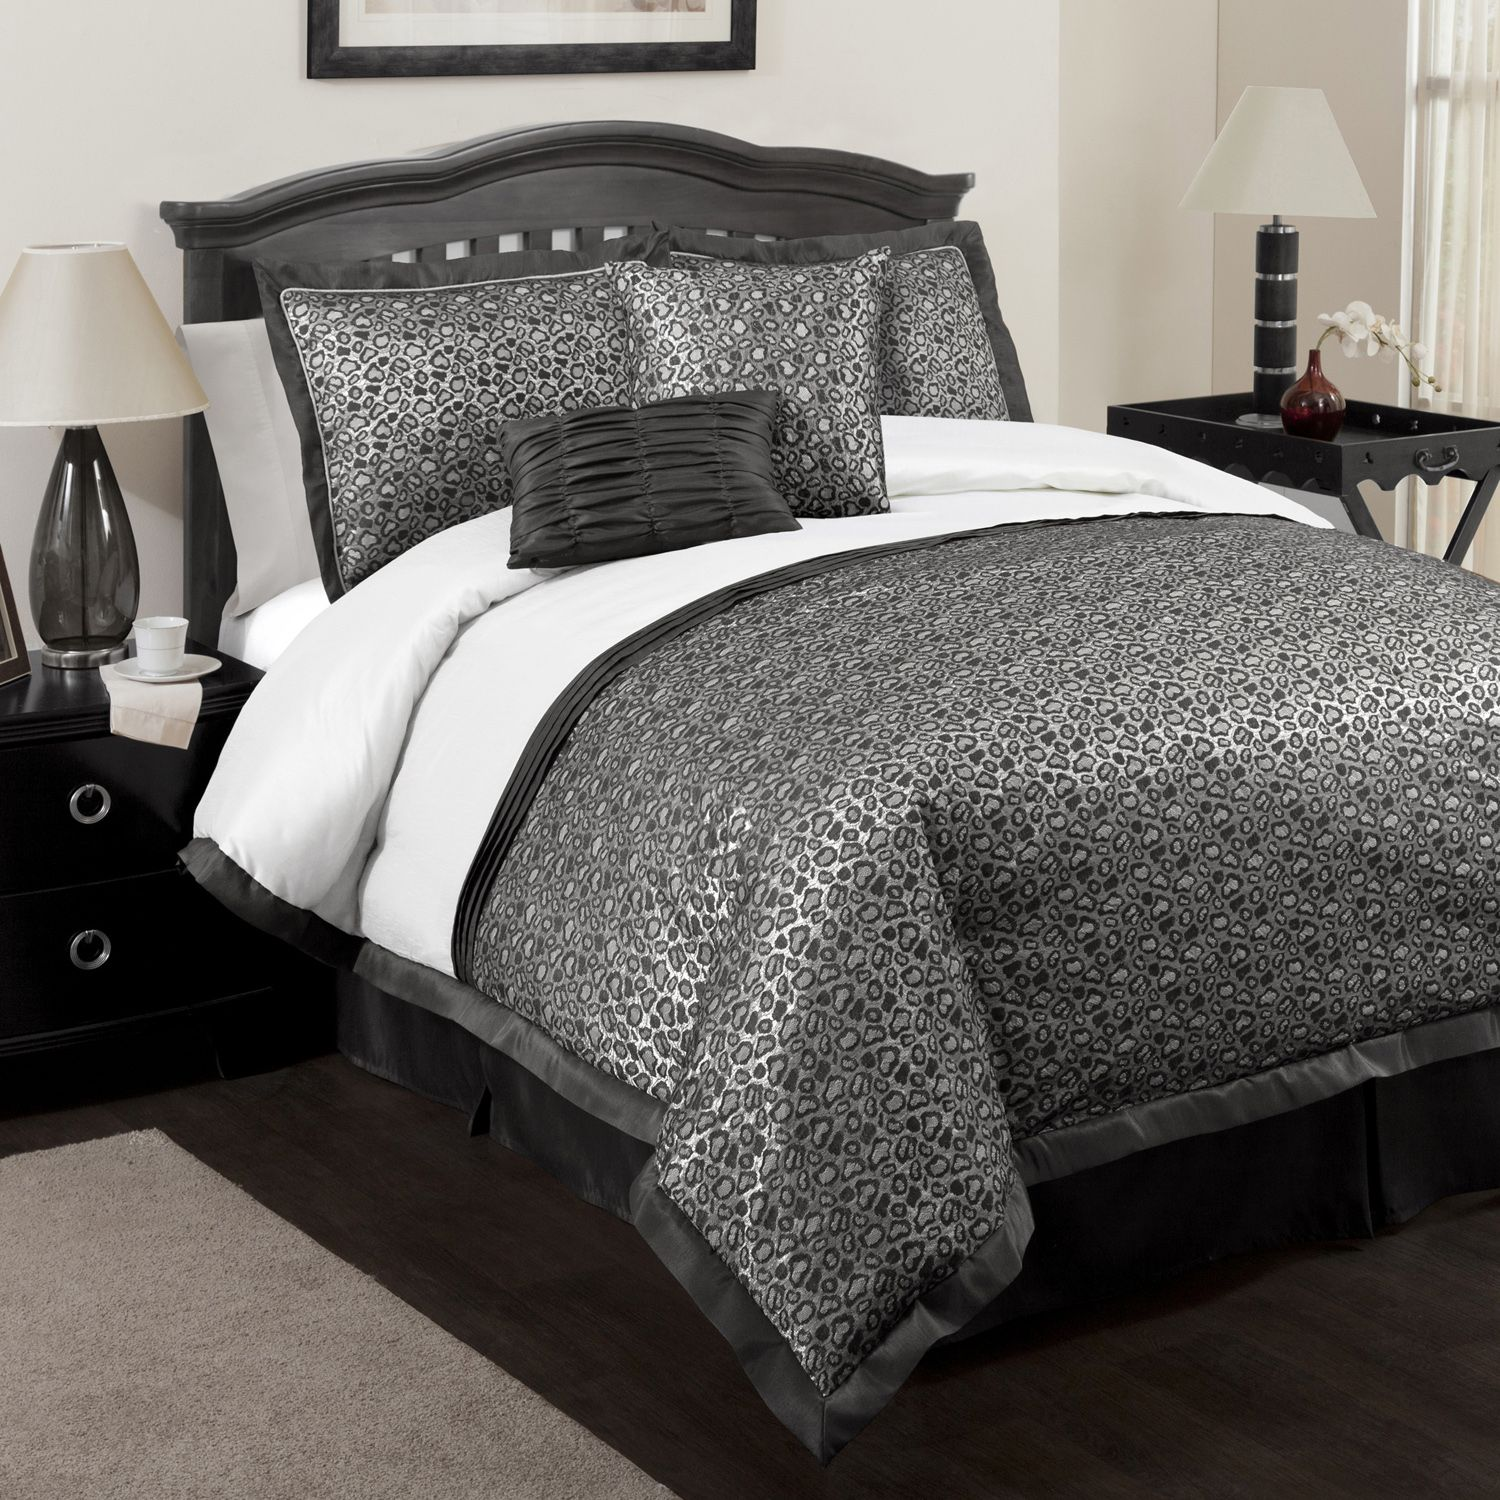 Black And Silver Bed May 2013 Queen And King Size Bedroom Sets